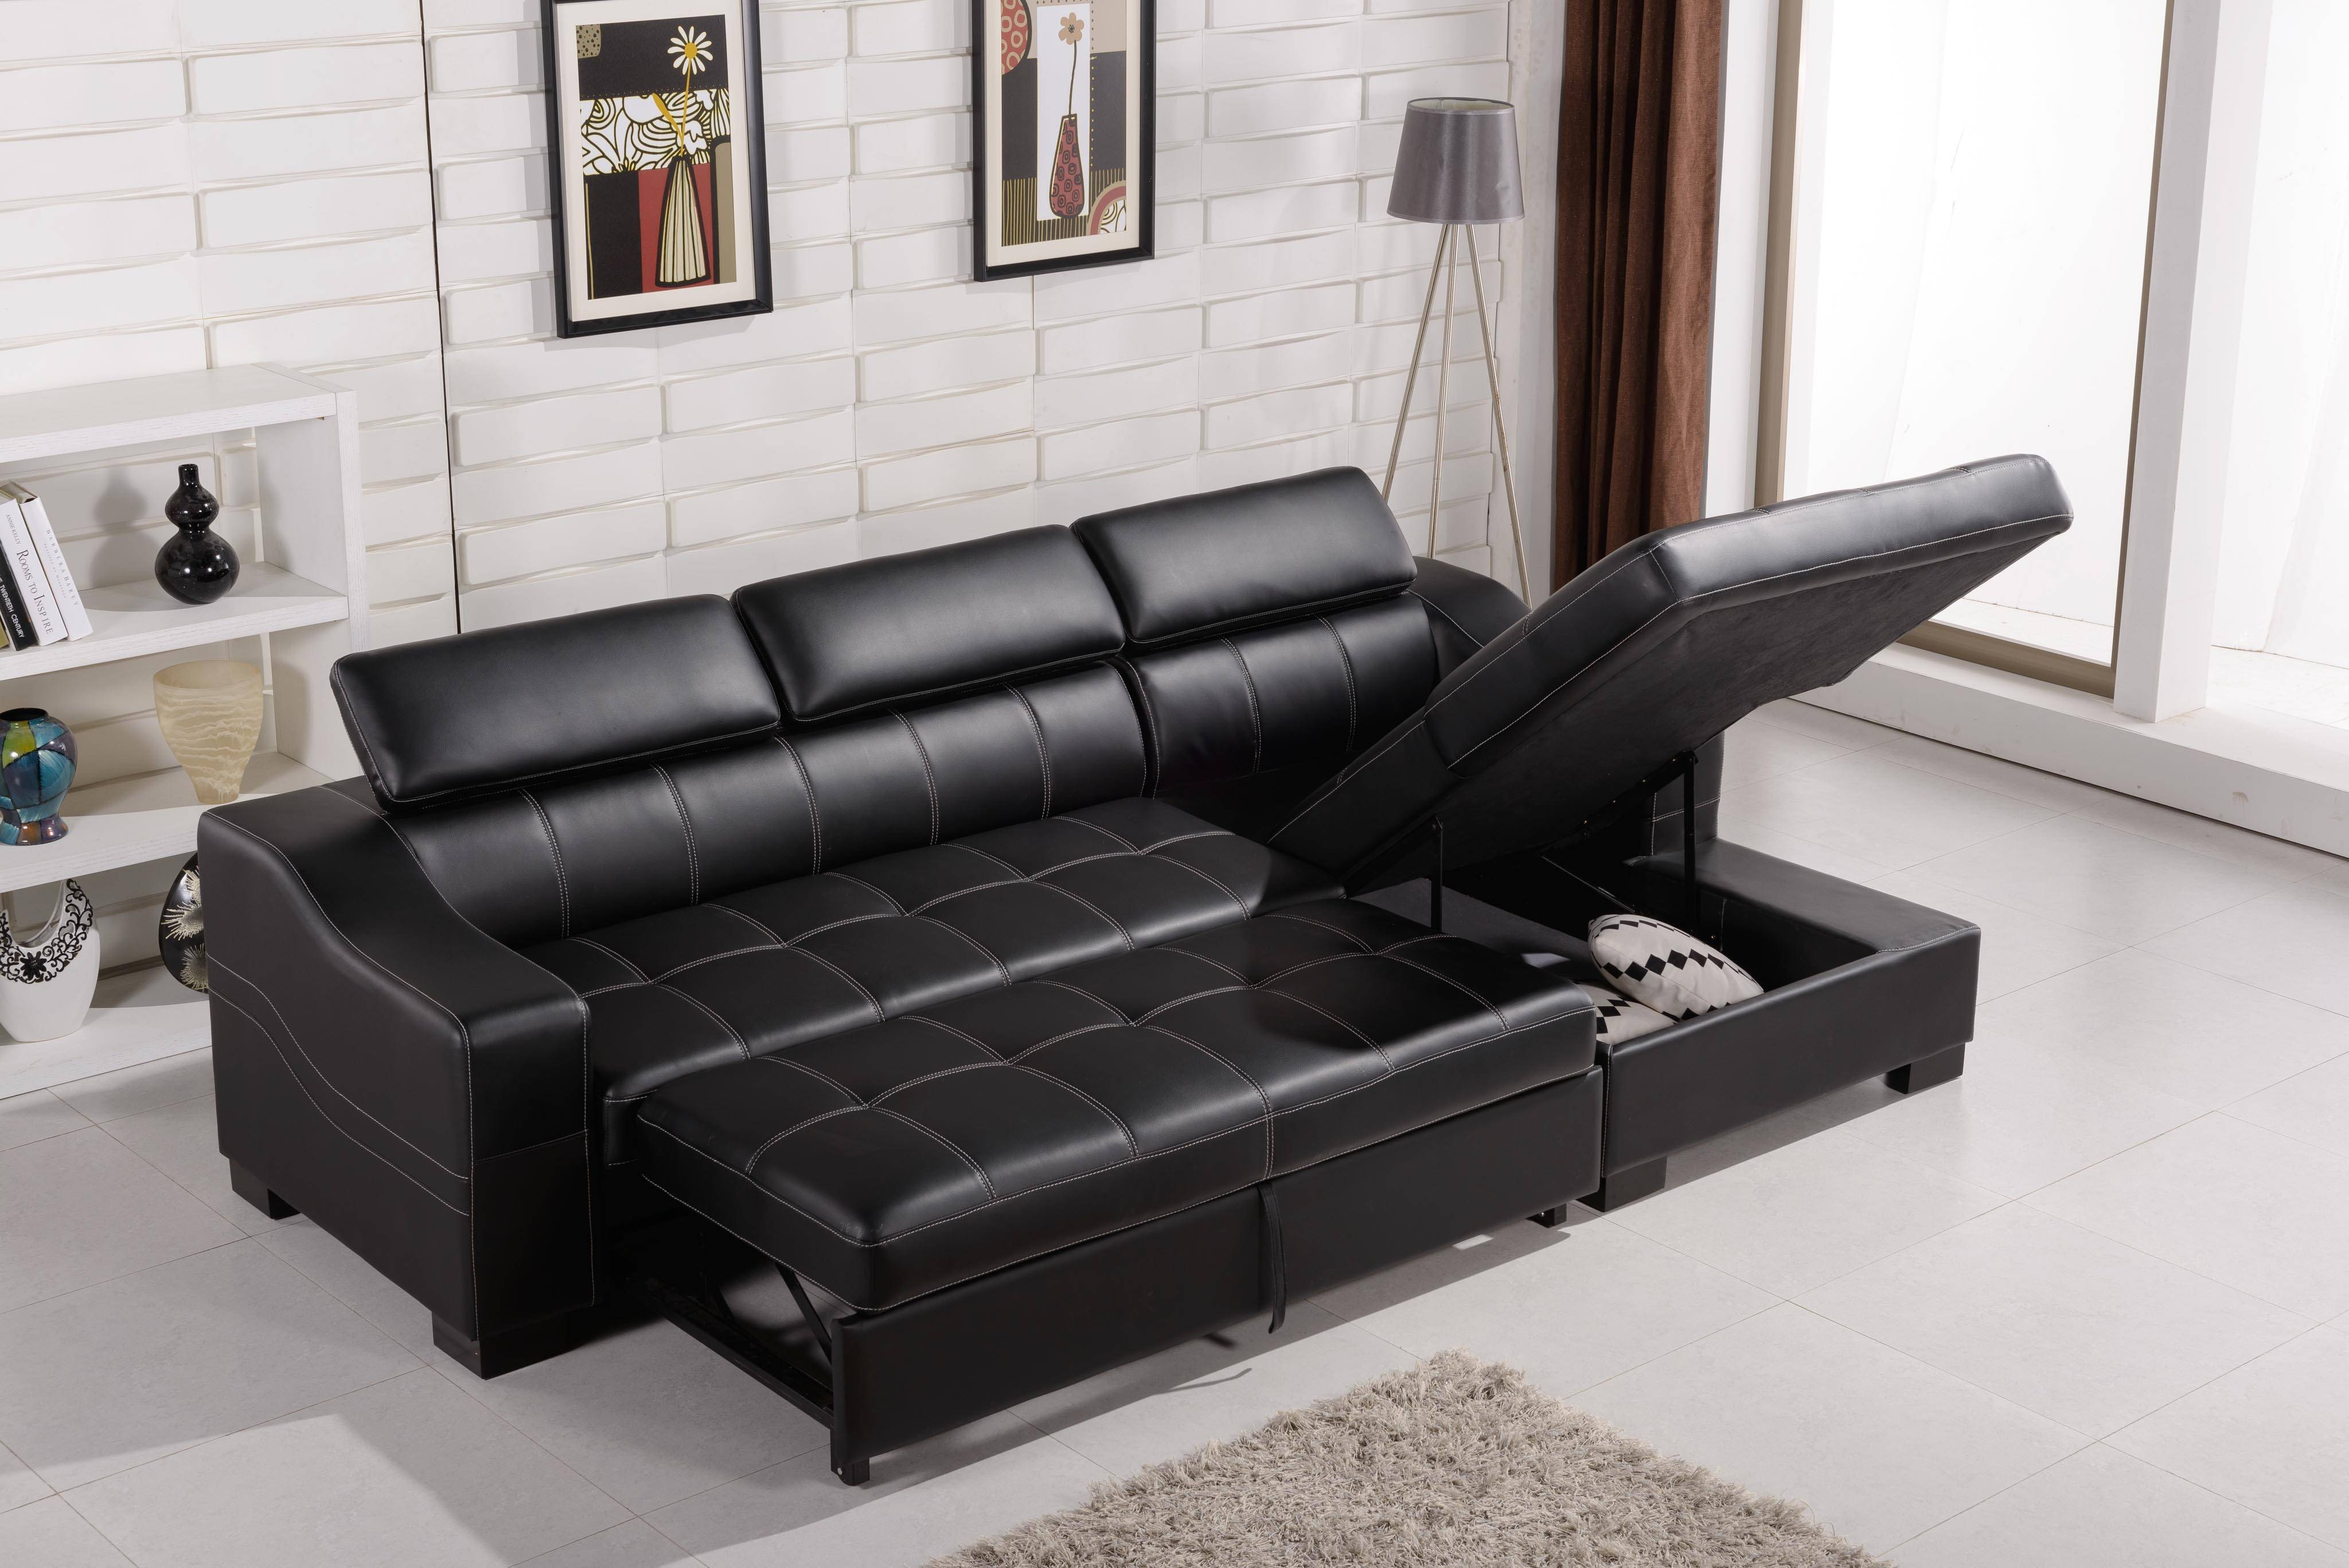 Sofa Bed With Chaise Storage | Centerfieldbar for Chaise Sofa Beds With Storage (Image 13 of 15)